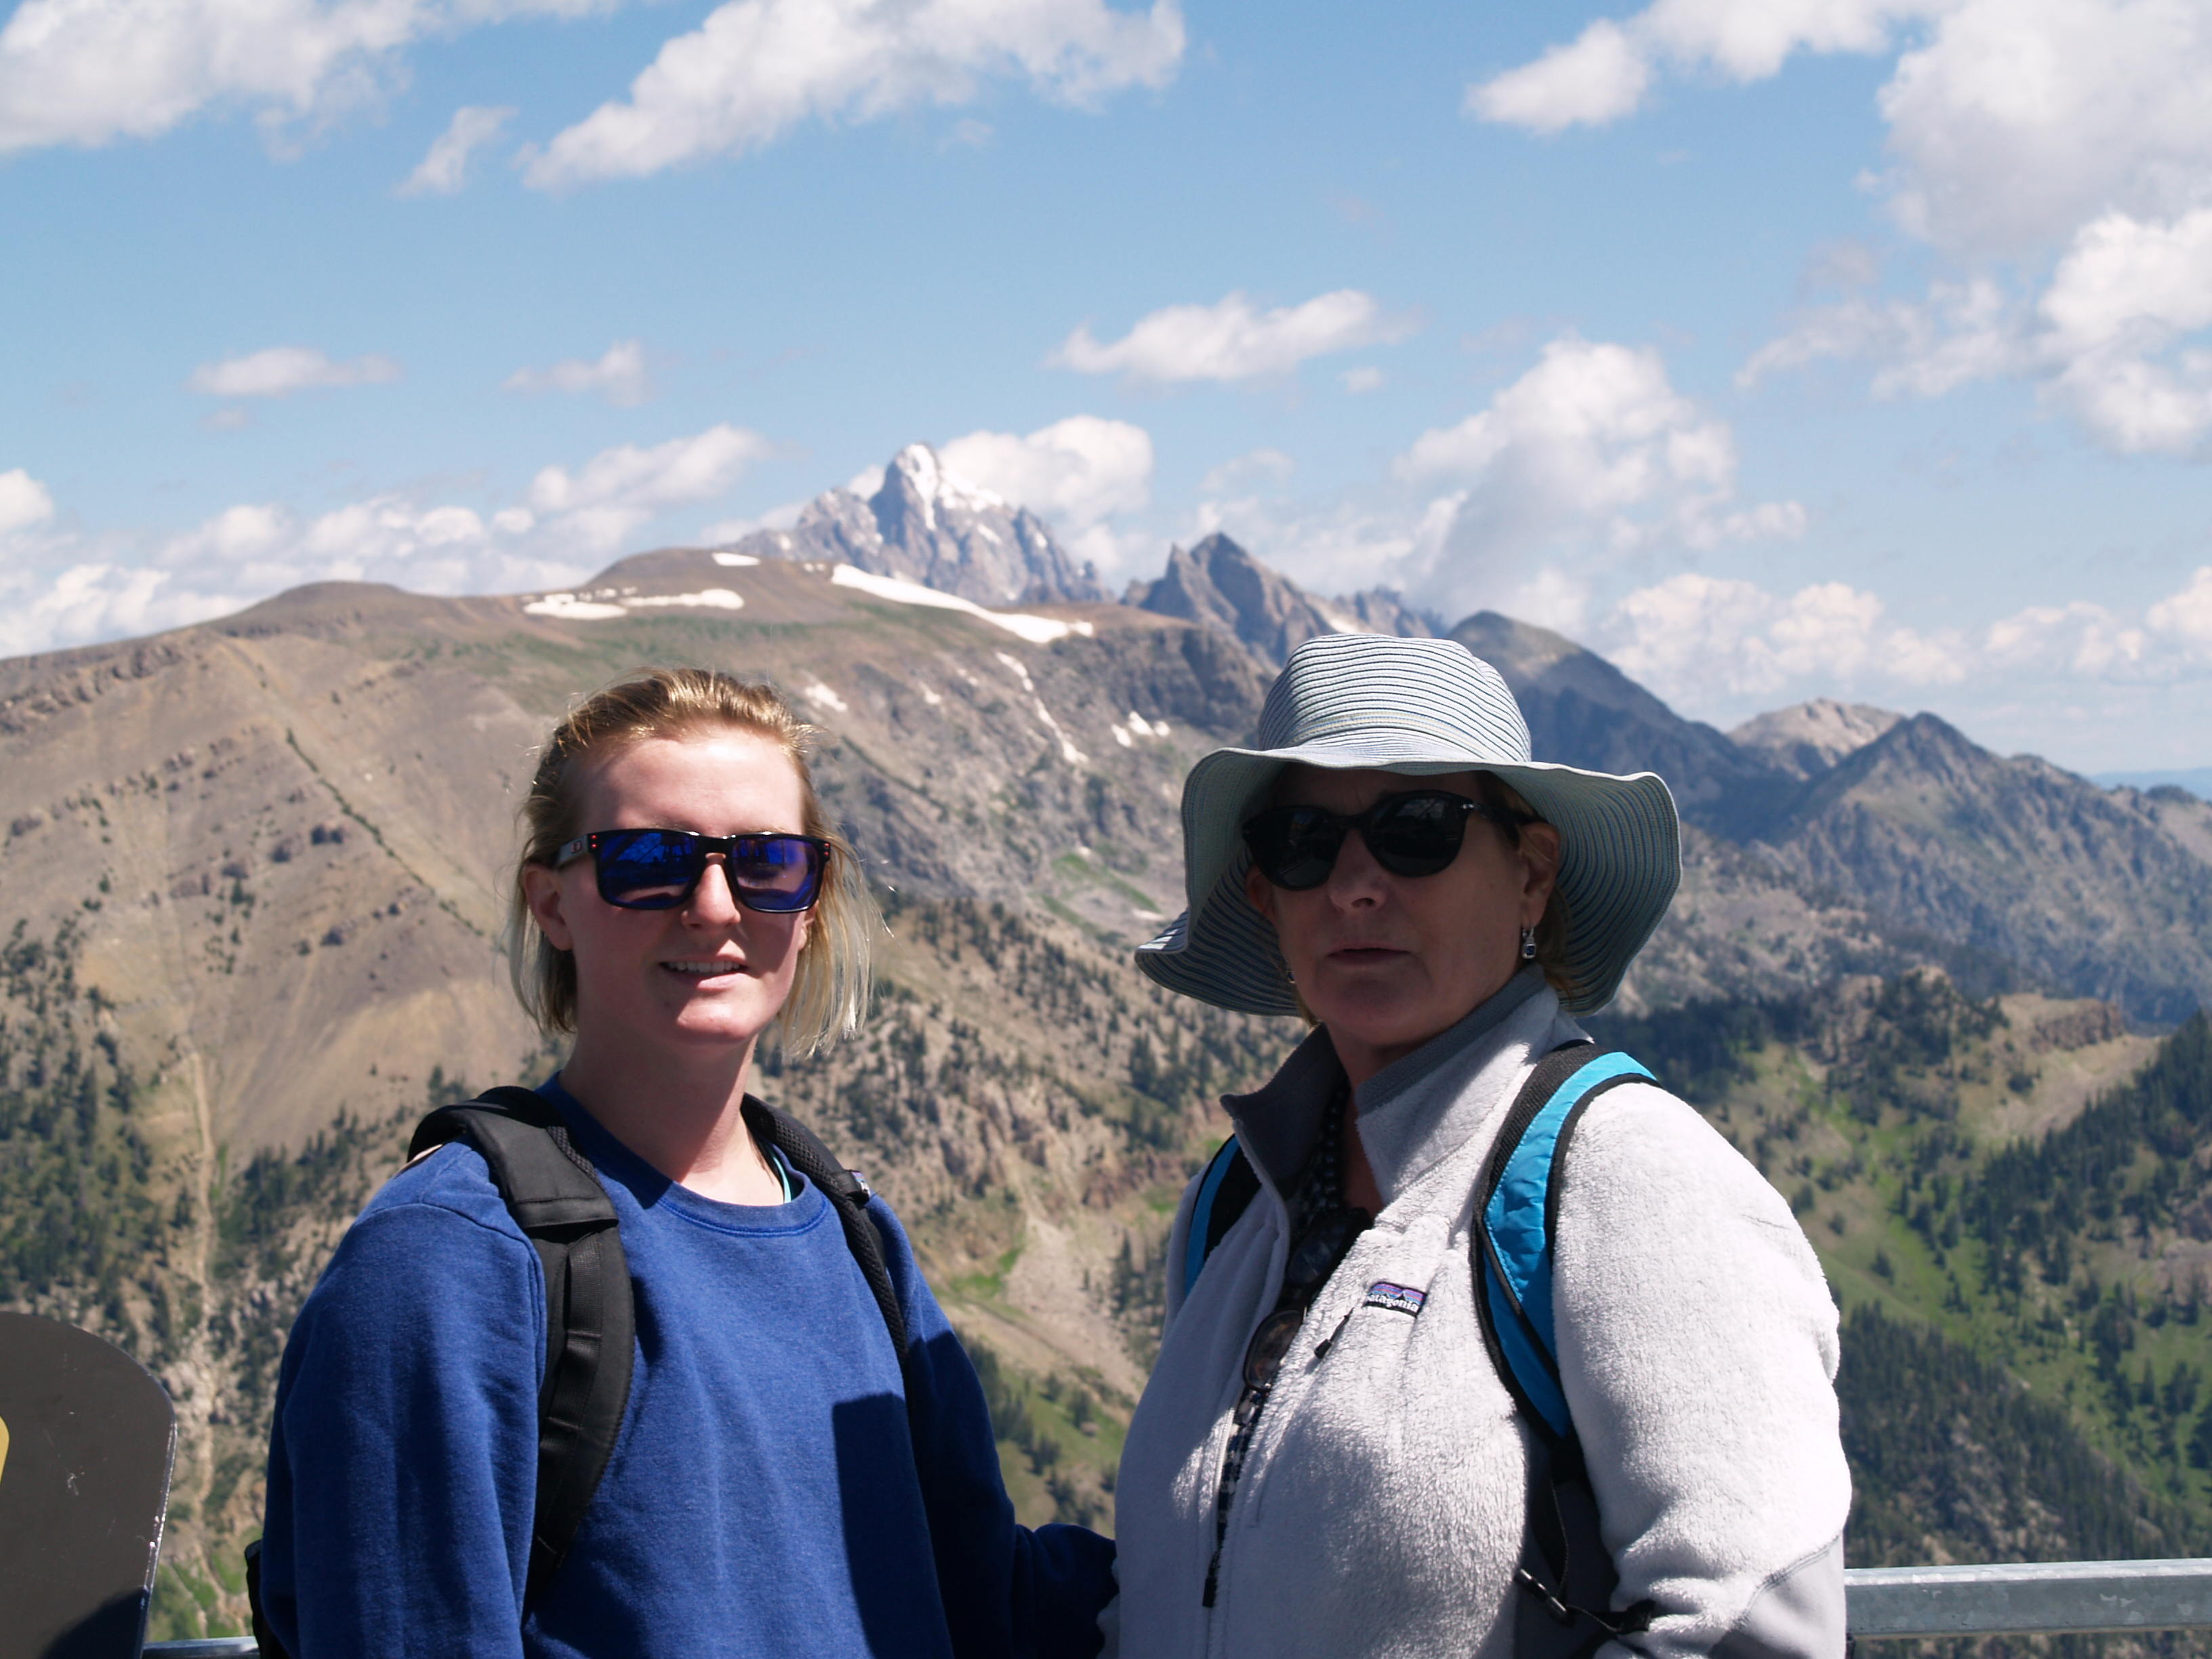 top of the tram, with the Grand Teton in the background